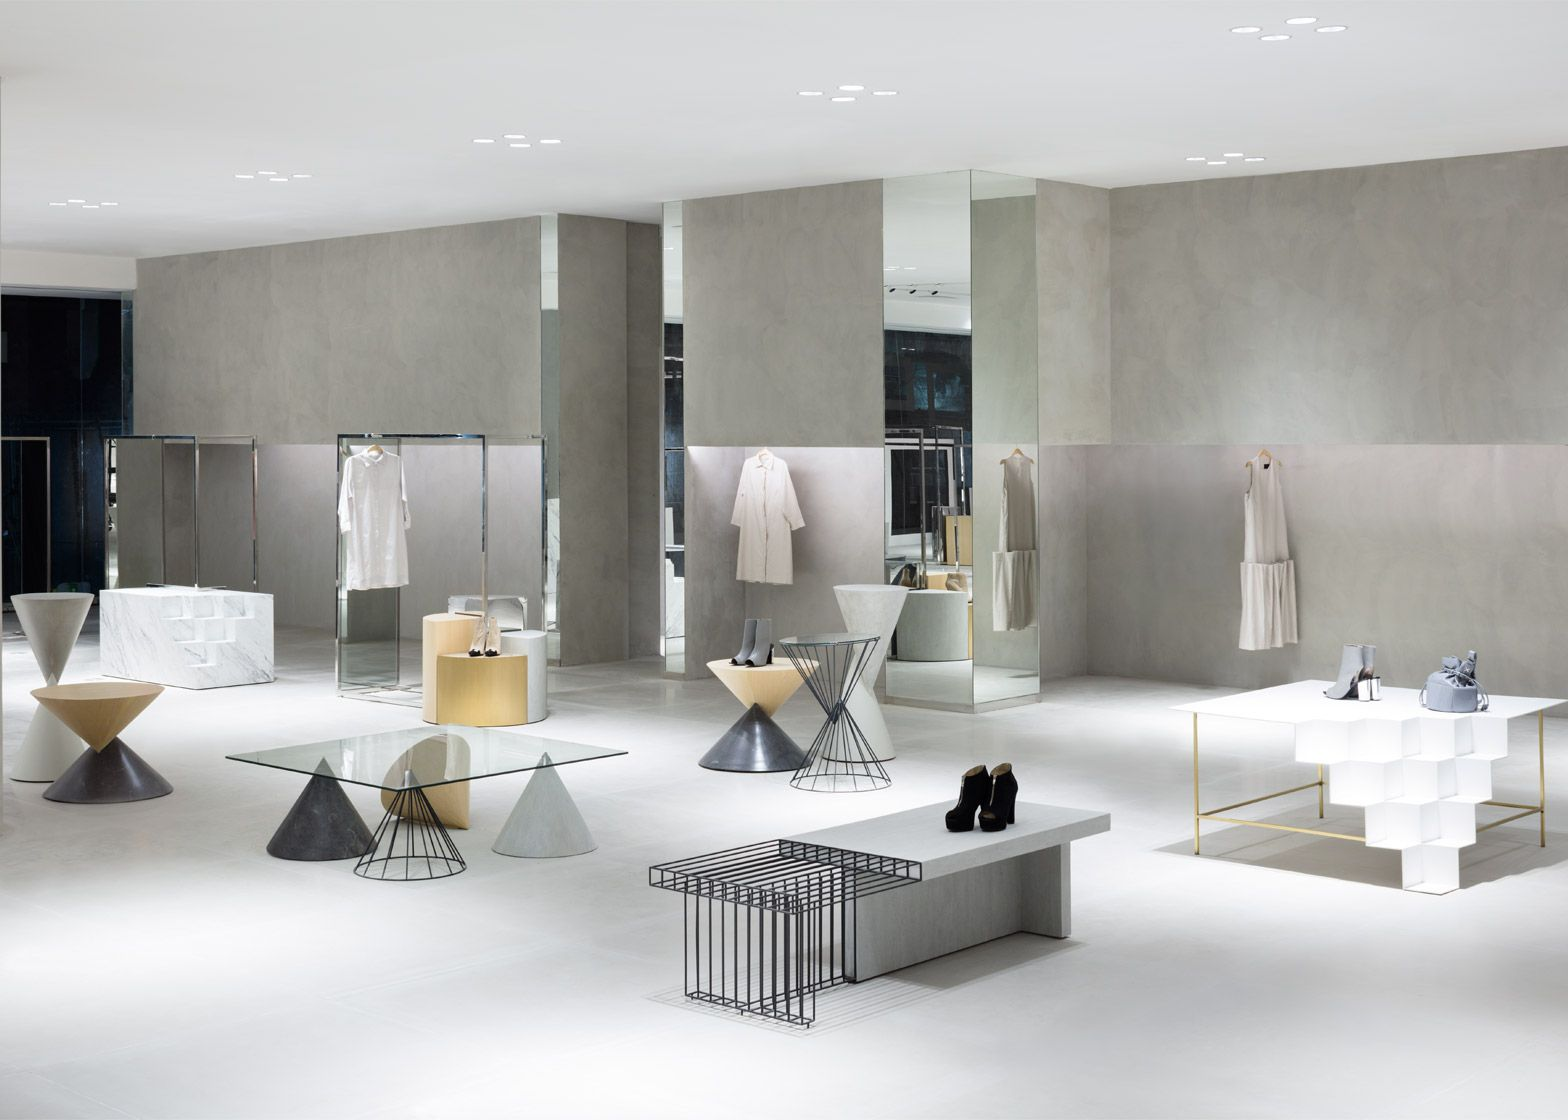 Nendo redesigns Siam Discovery department store in Bangkok